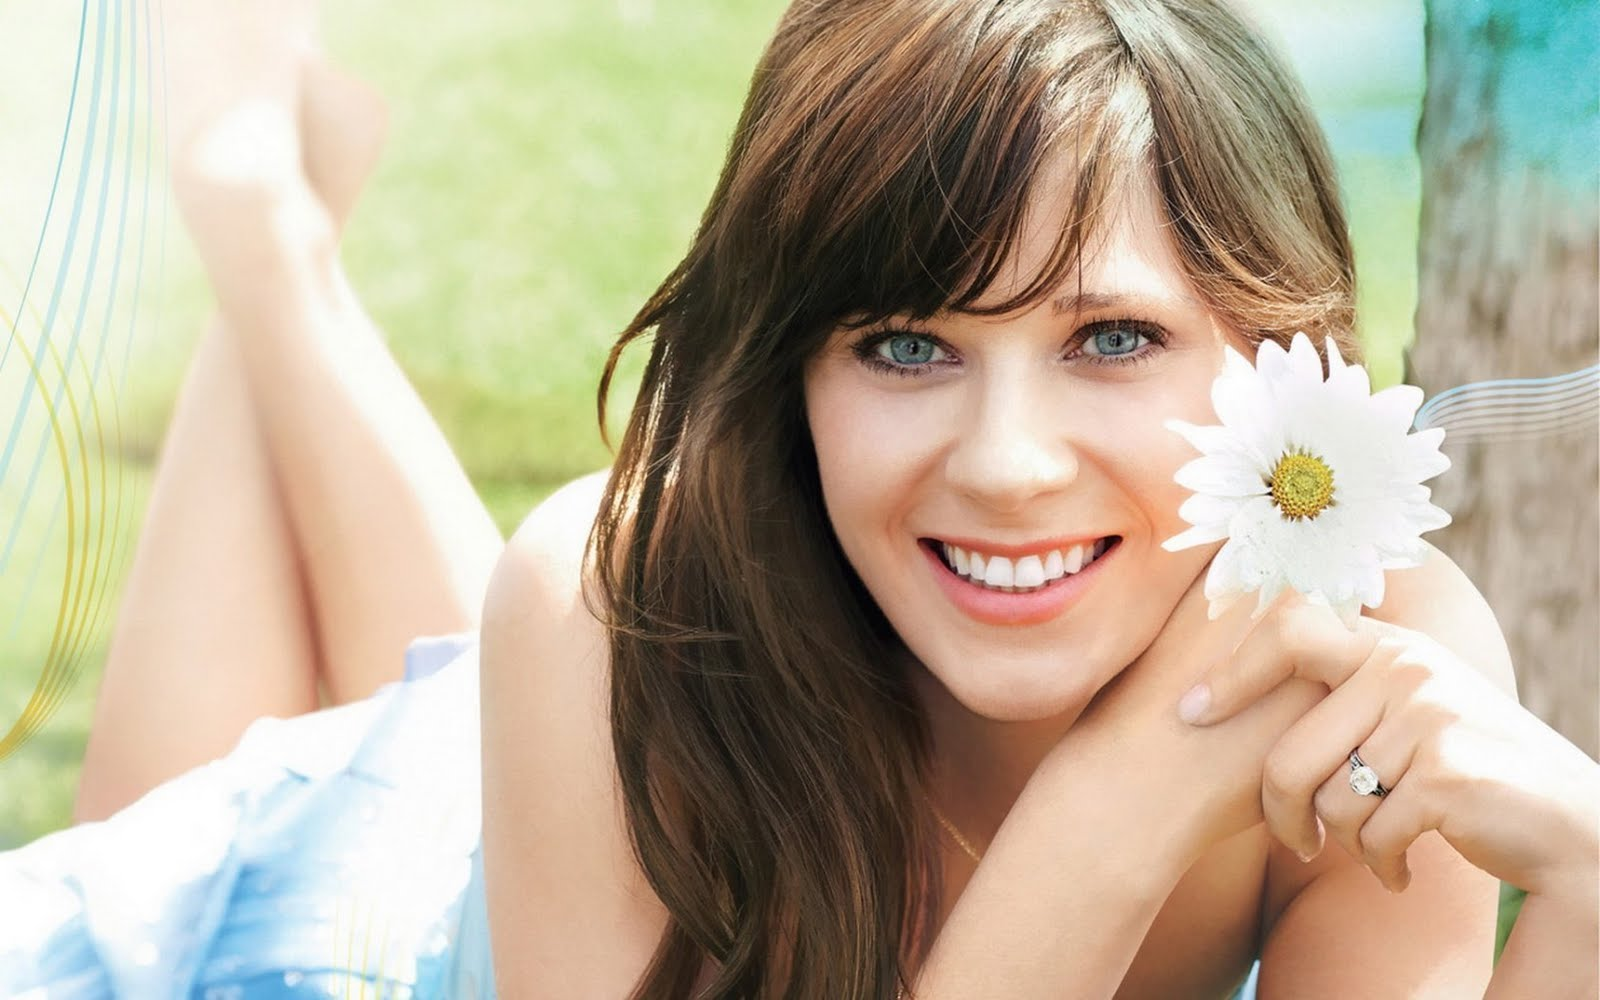 http://2.bp.blogspot.com/-A5MuuJDDiP4/TkBNF3pc__I/AAAAAAAAKz4/EYVuOfKZ6X8/s1600/zooey+deschanel+hot+wallpaper_2.jpg